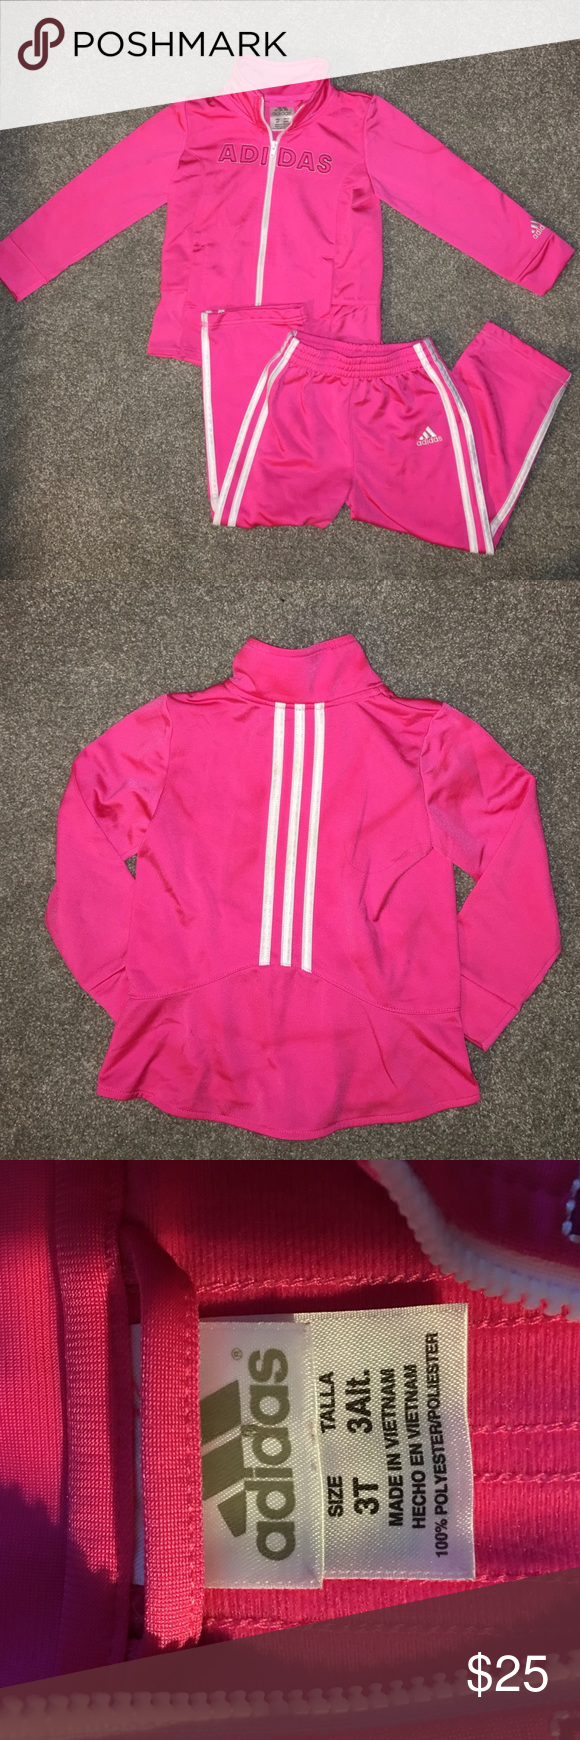 Adidas toddlers sweat suit Adidas cute outfit! Great condition! 3t adidas Shirts & Tops Sweatshirts & Hoodies